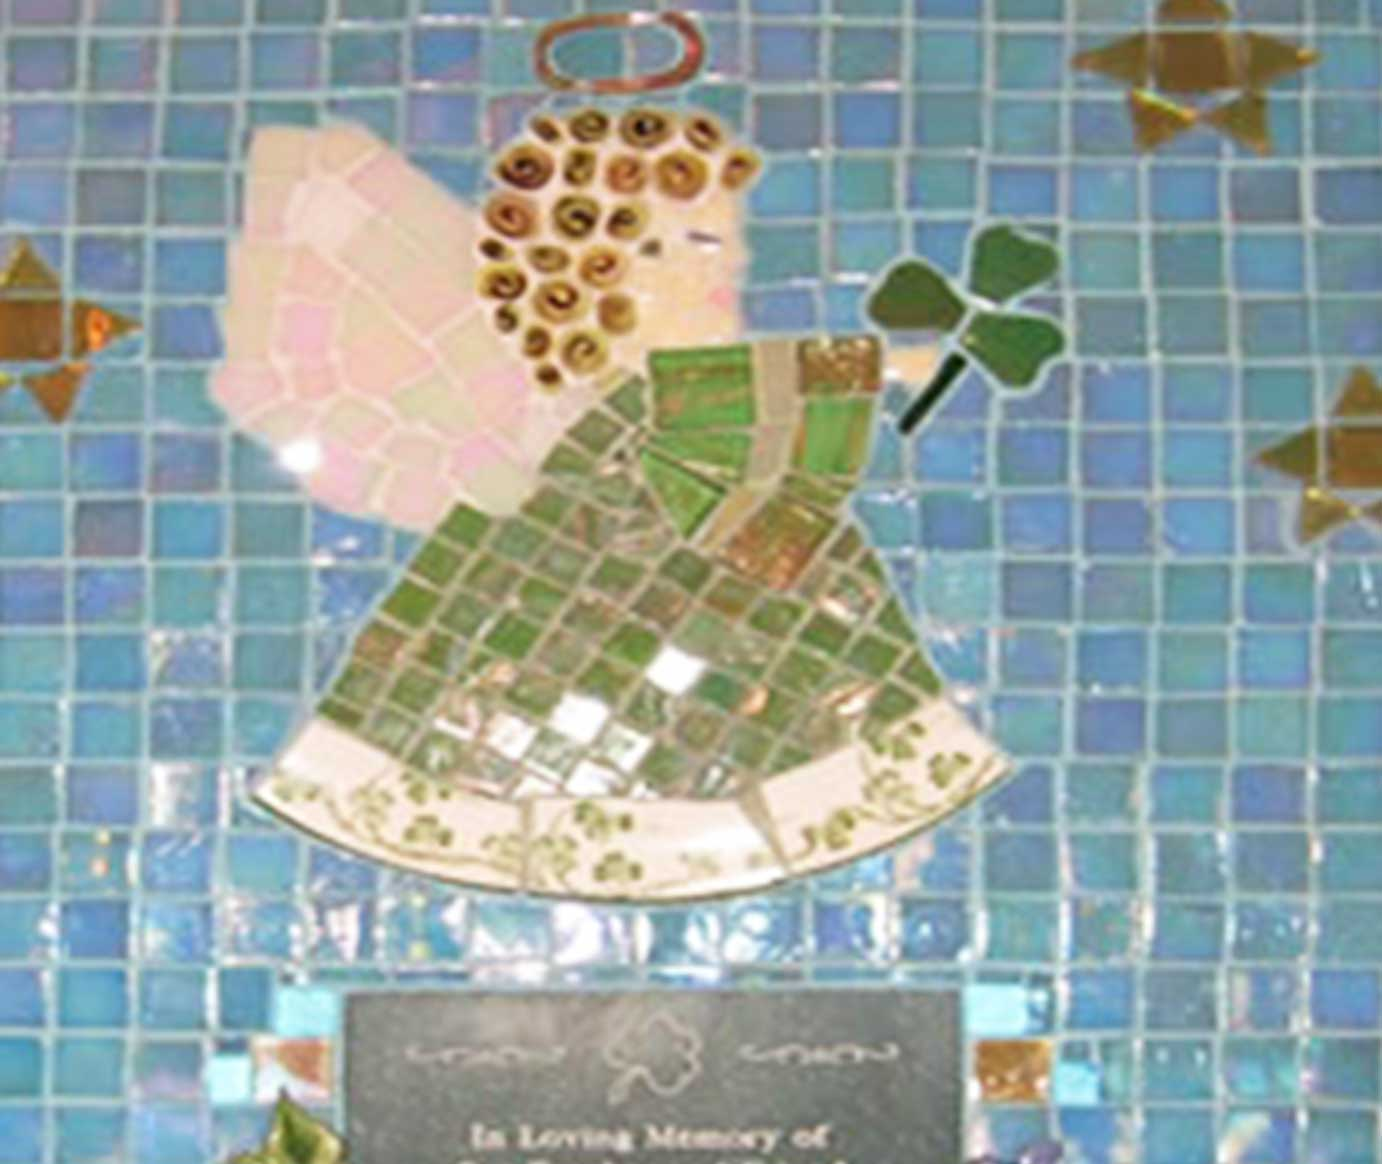 Mosaic Memorial Picture Plaque of Kate's Angel Closeup by Water's End Studio Artist Linda Solby